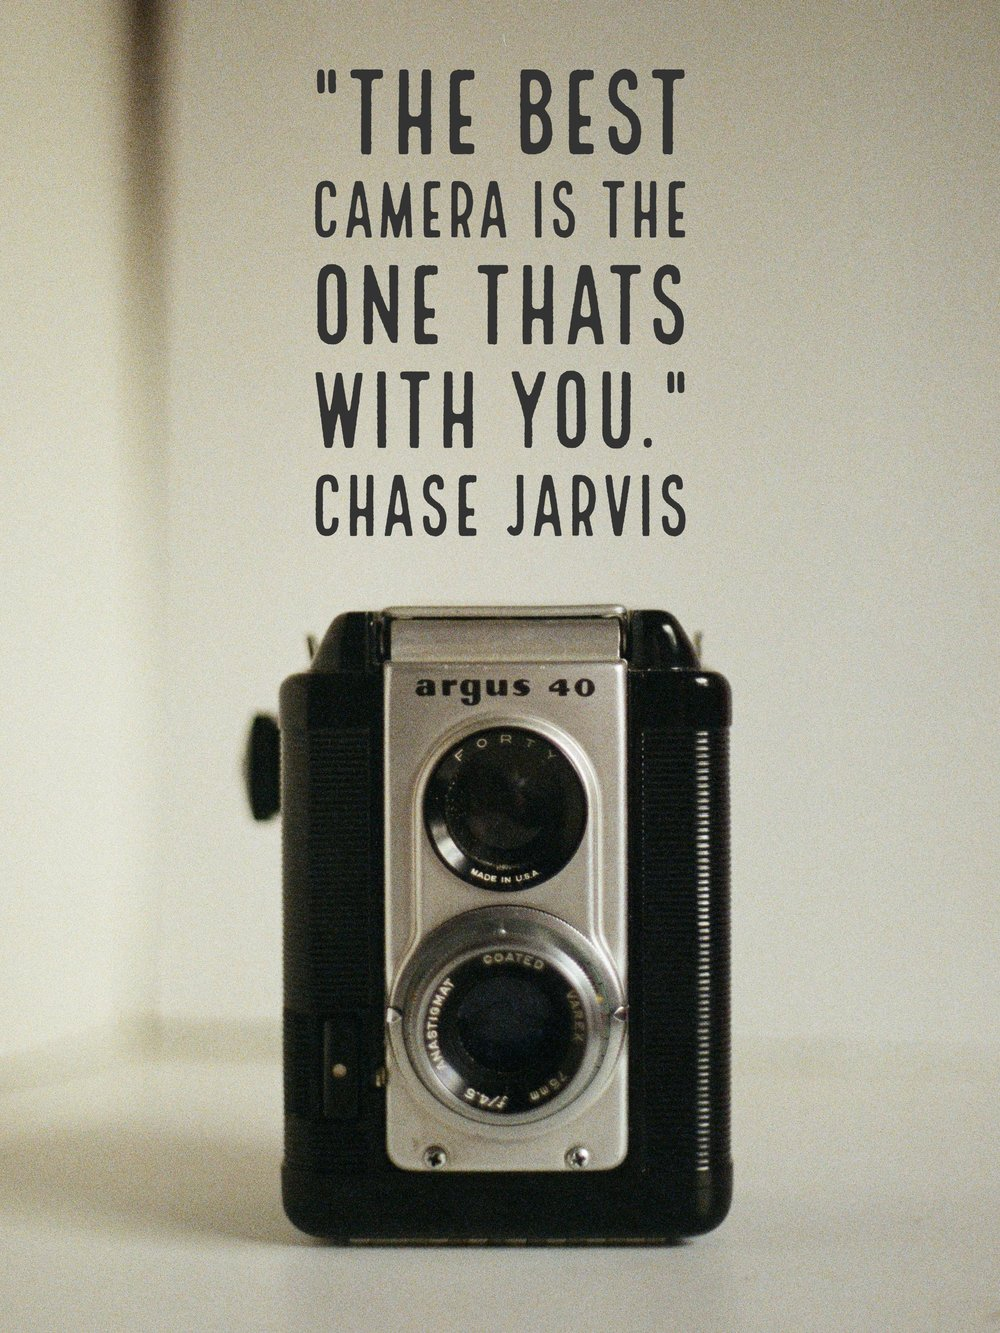 chase-jarvis-best-camera-one-with-you-quote.jpg